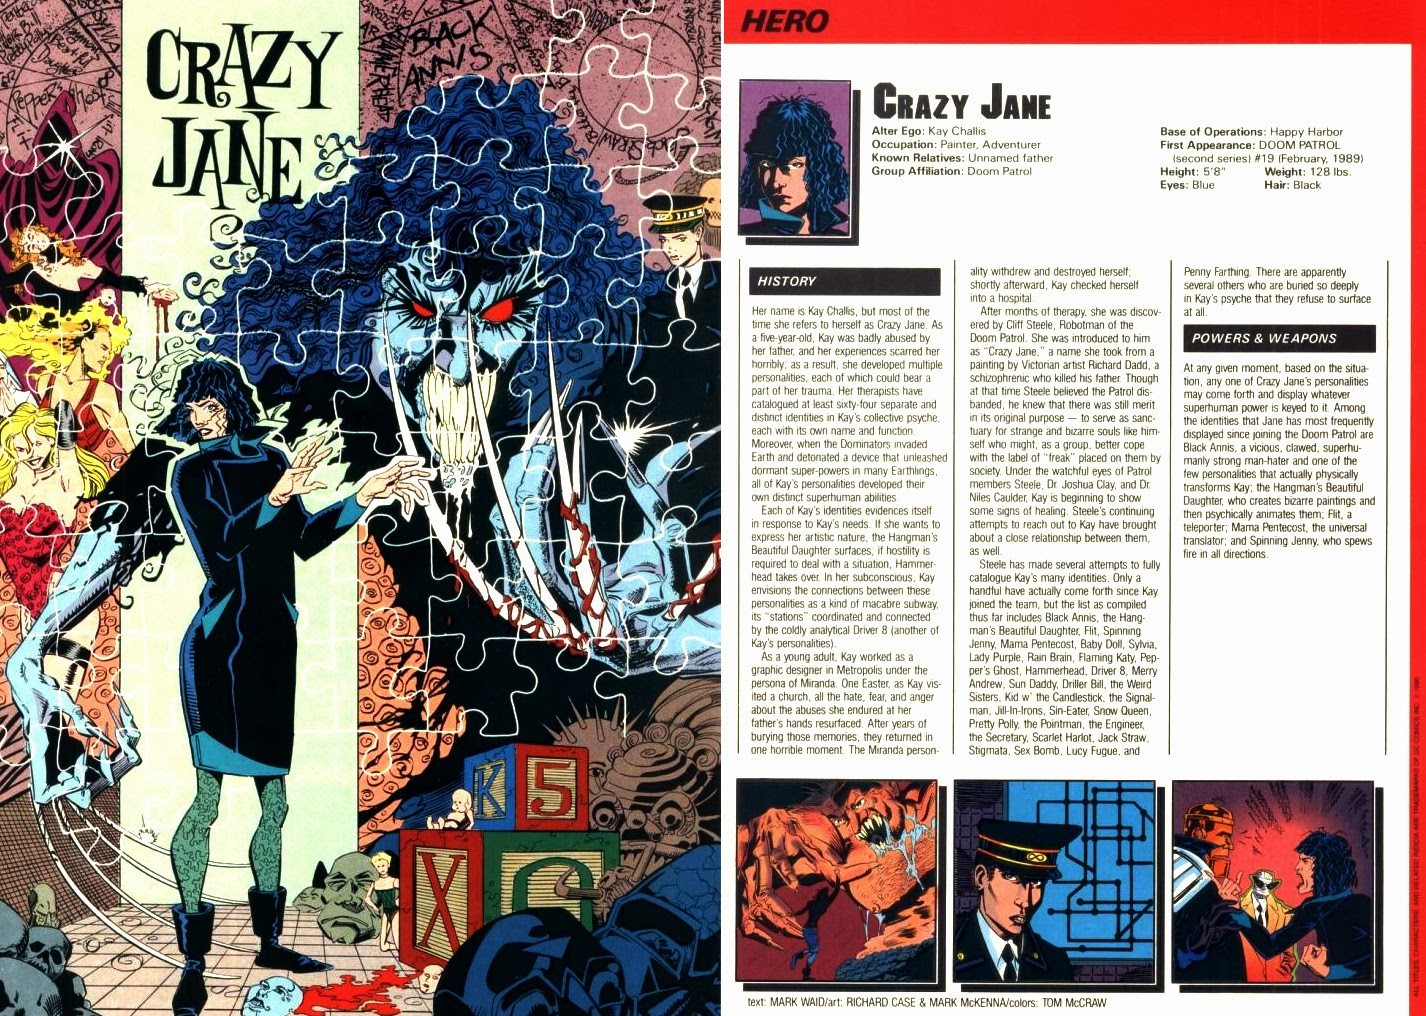 Crazy Jane DC Comics